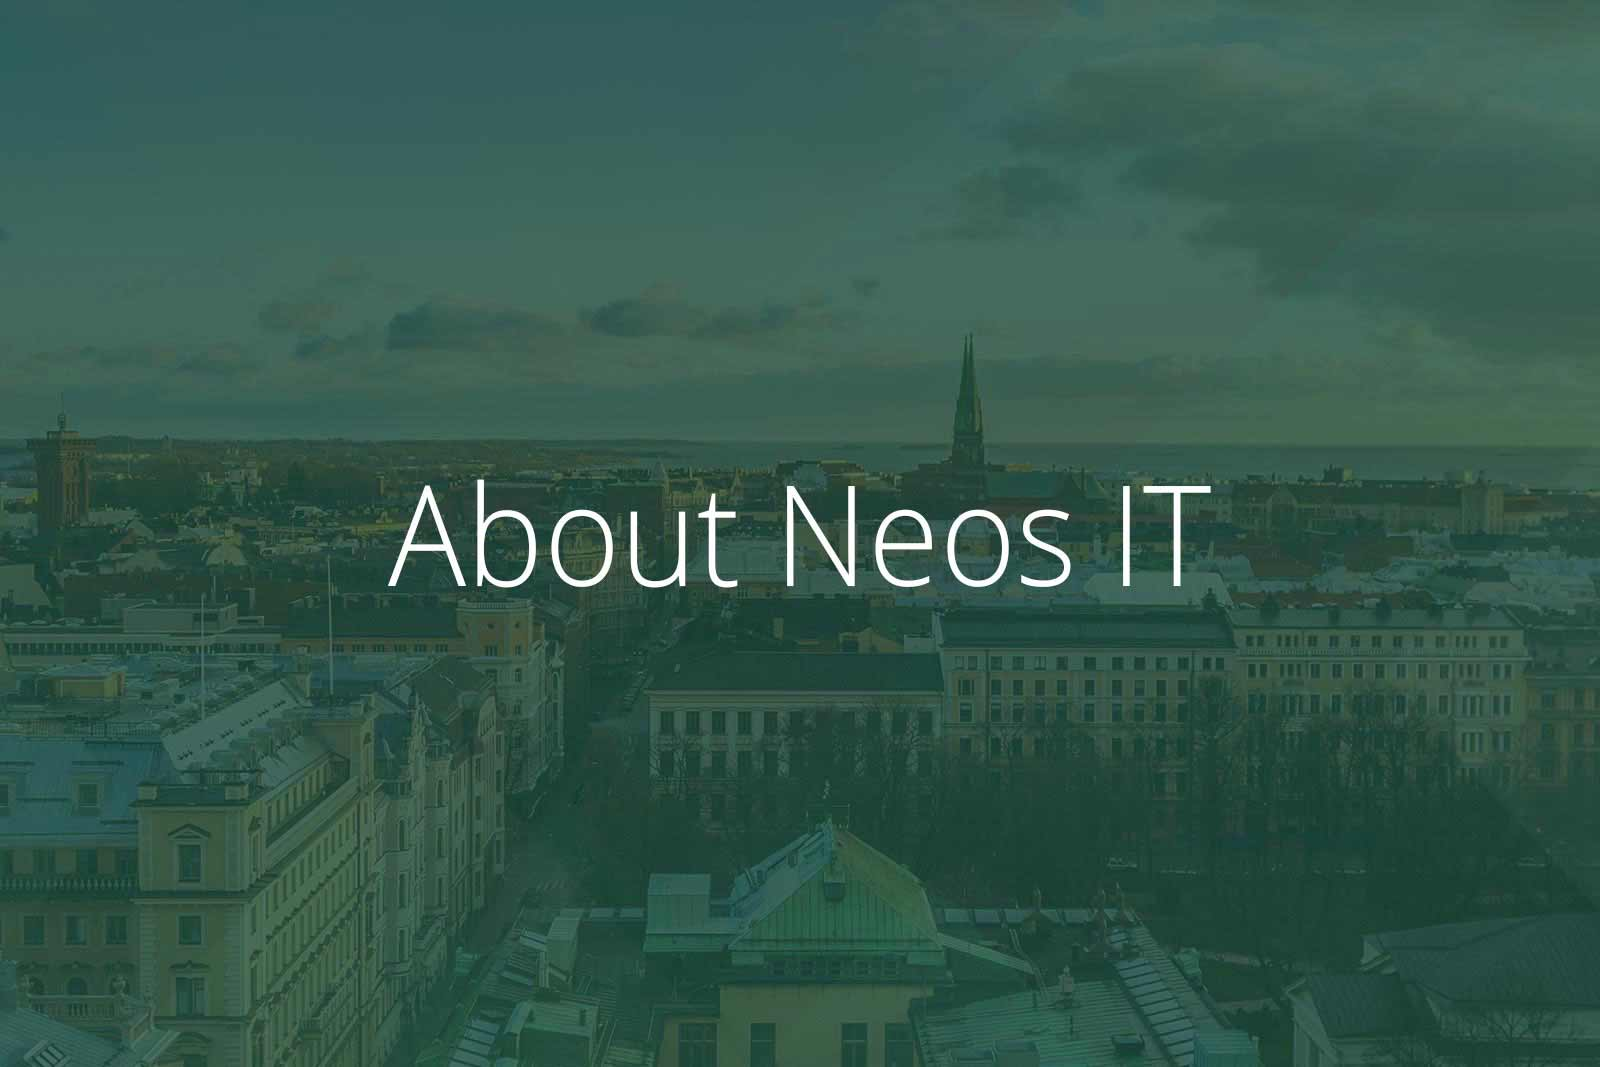 About Neos IT Services, Image Helsinki